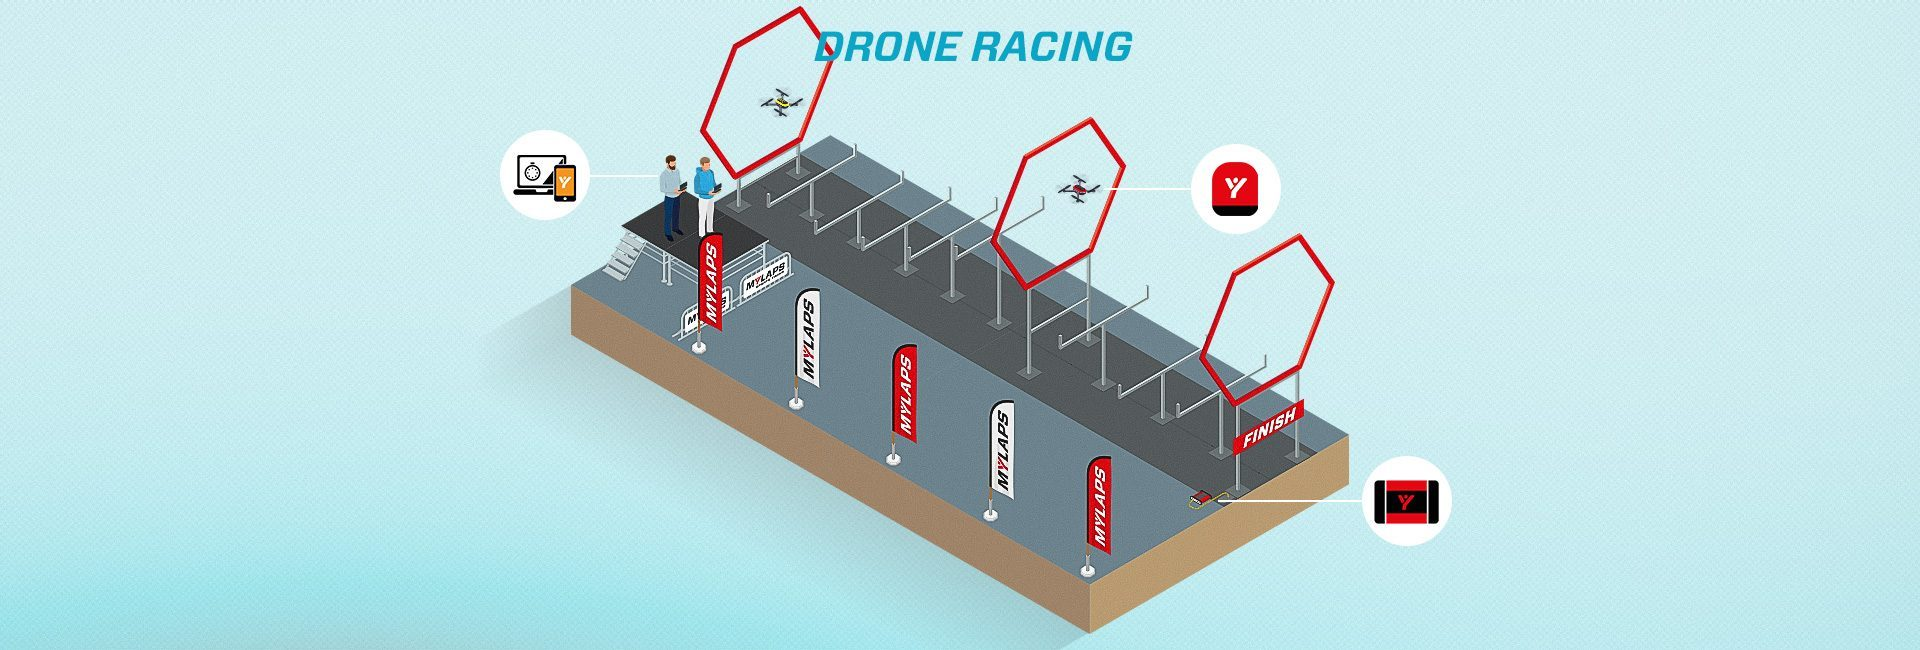 RC & Drone Racing 3